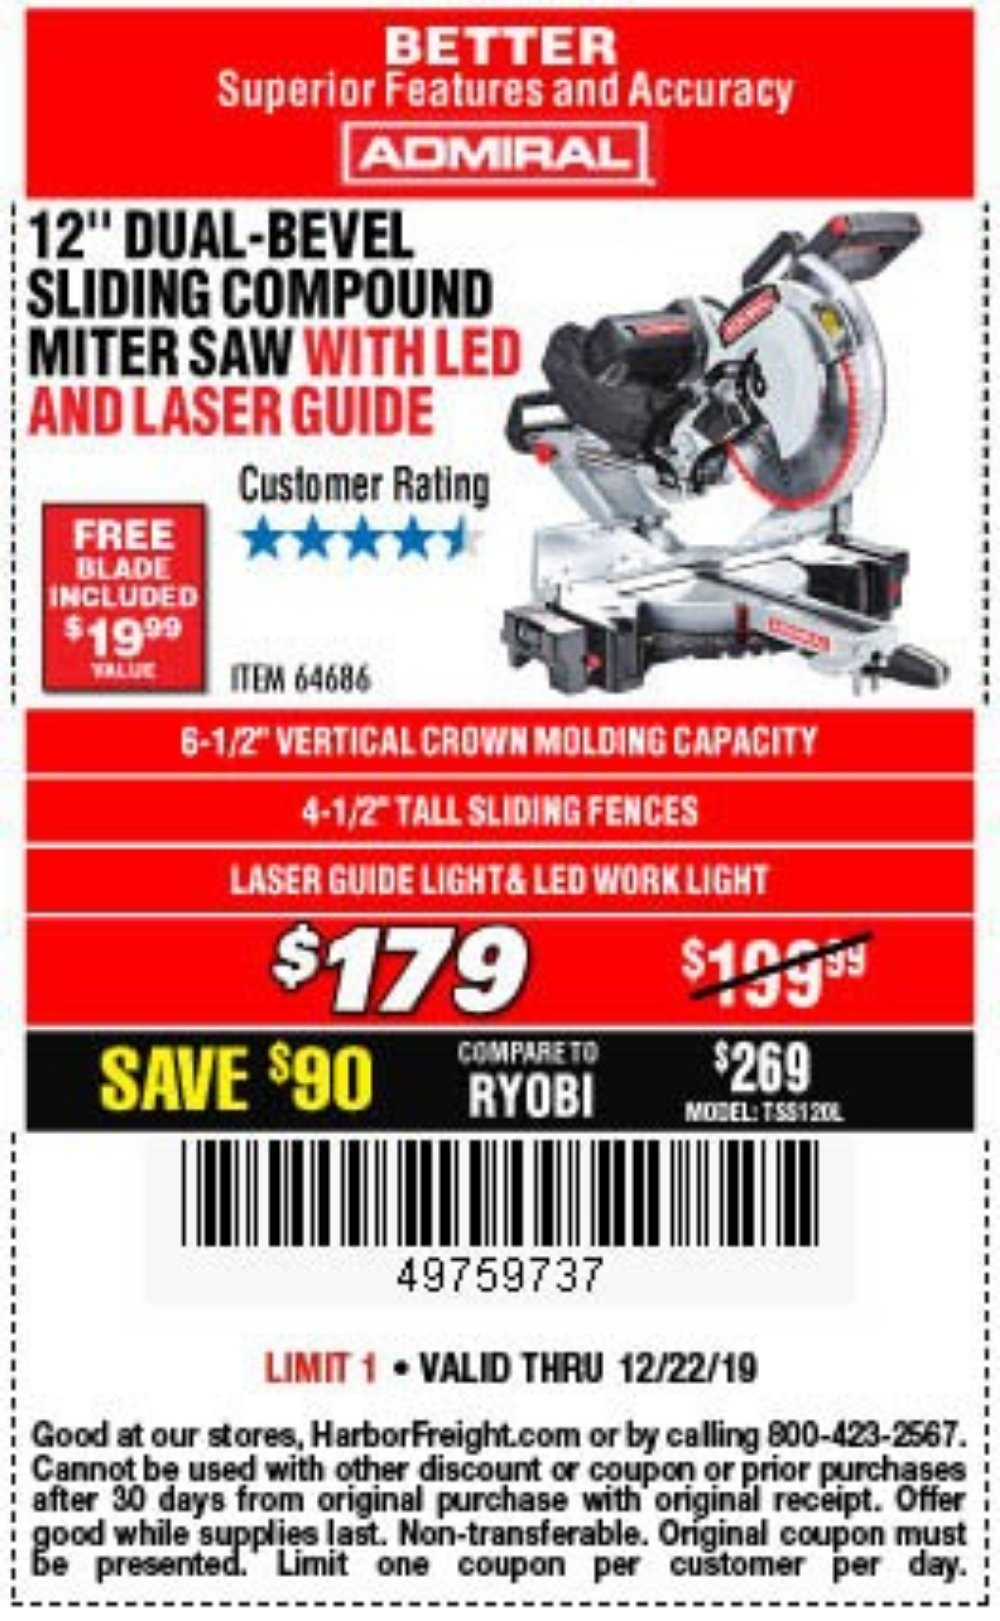 Harbor Freight Coupon, HF Coupons - Admiral 12